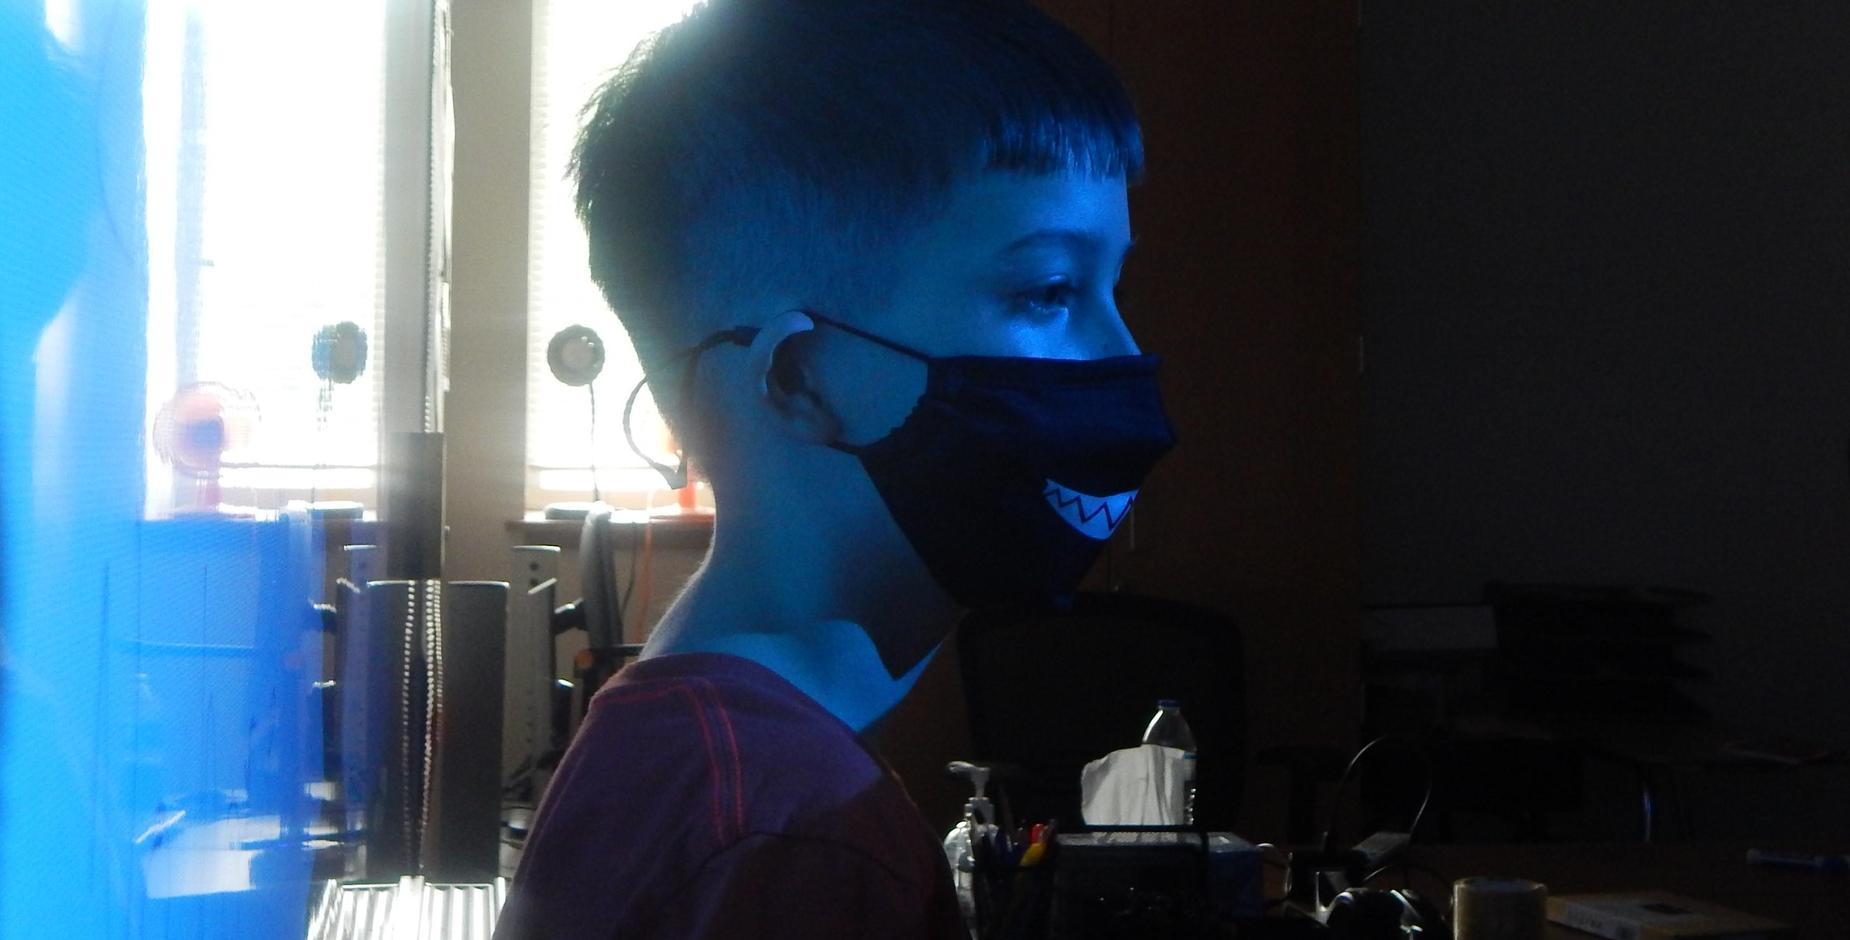 Child inside with mask